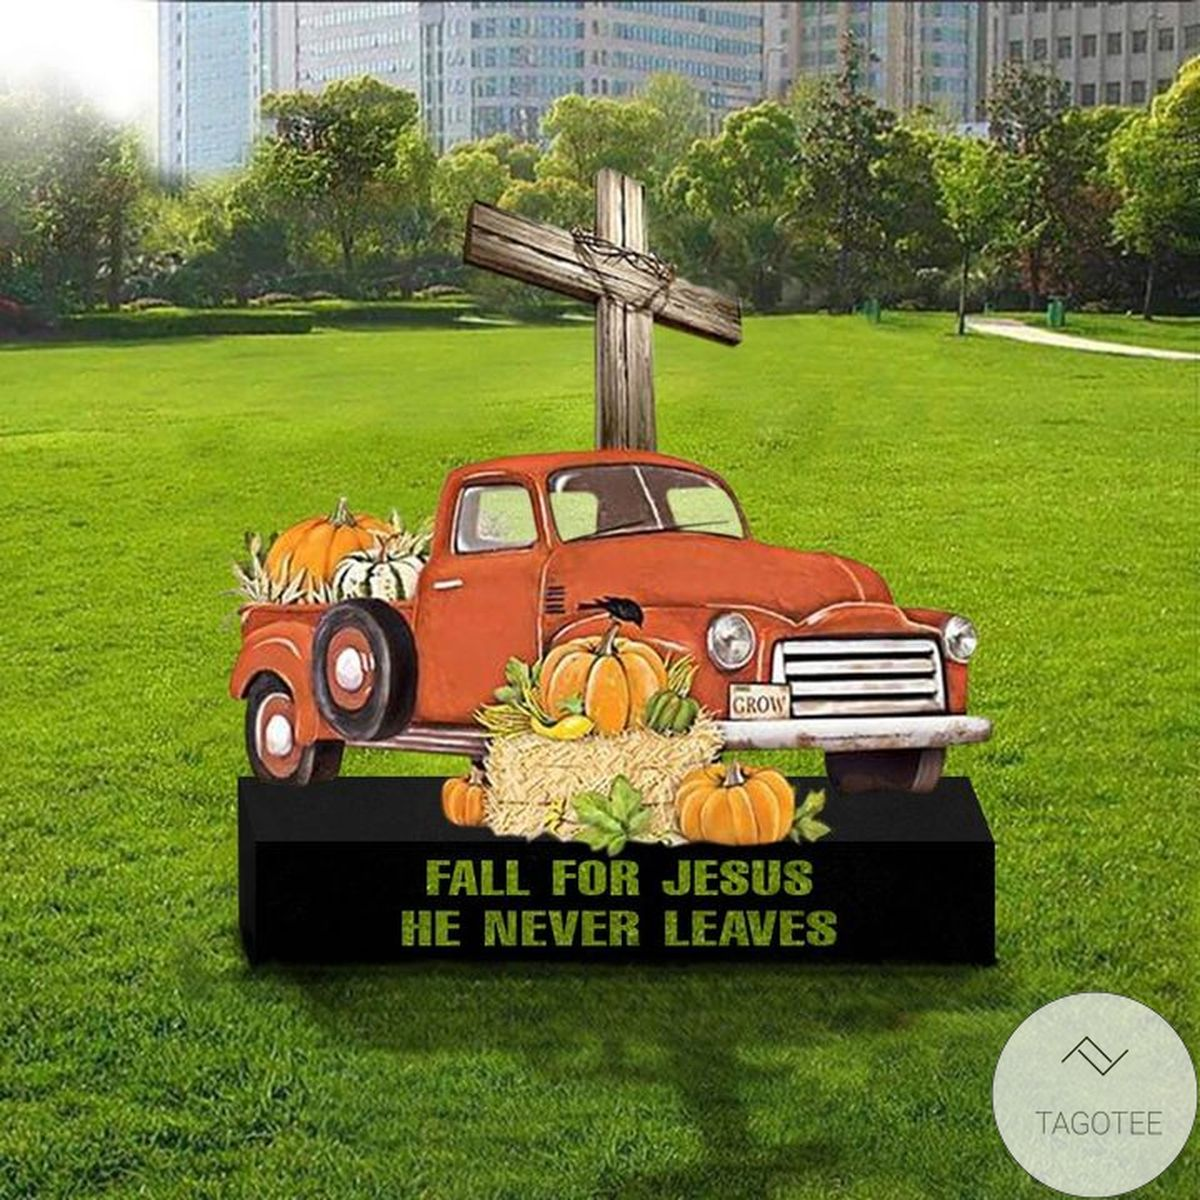 Fall For Jesus He Never Leaves Halloween Decorations Yard Sign